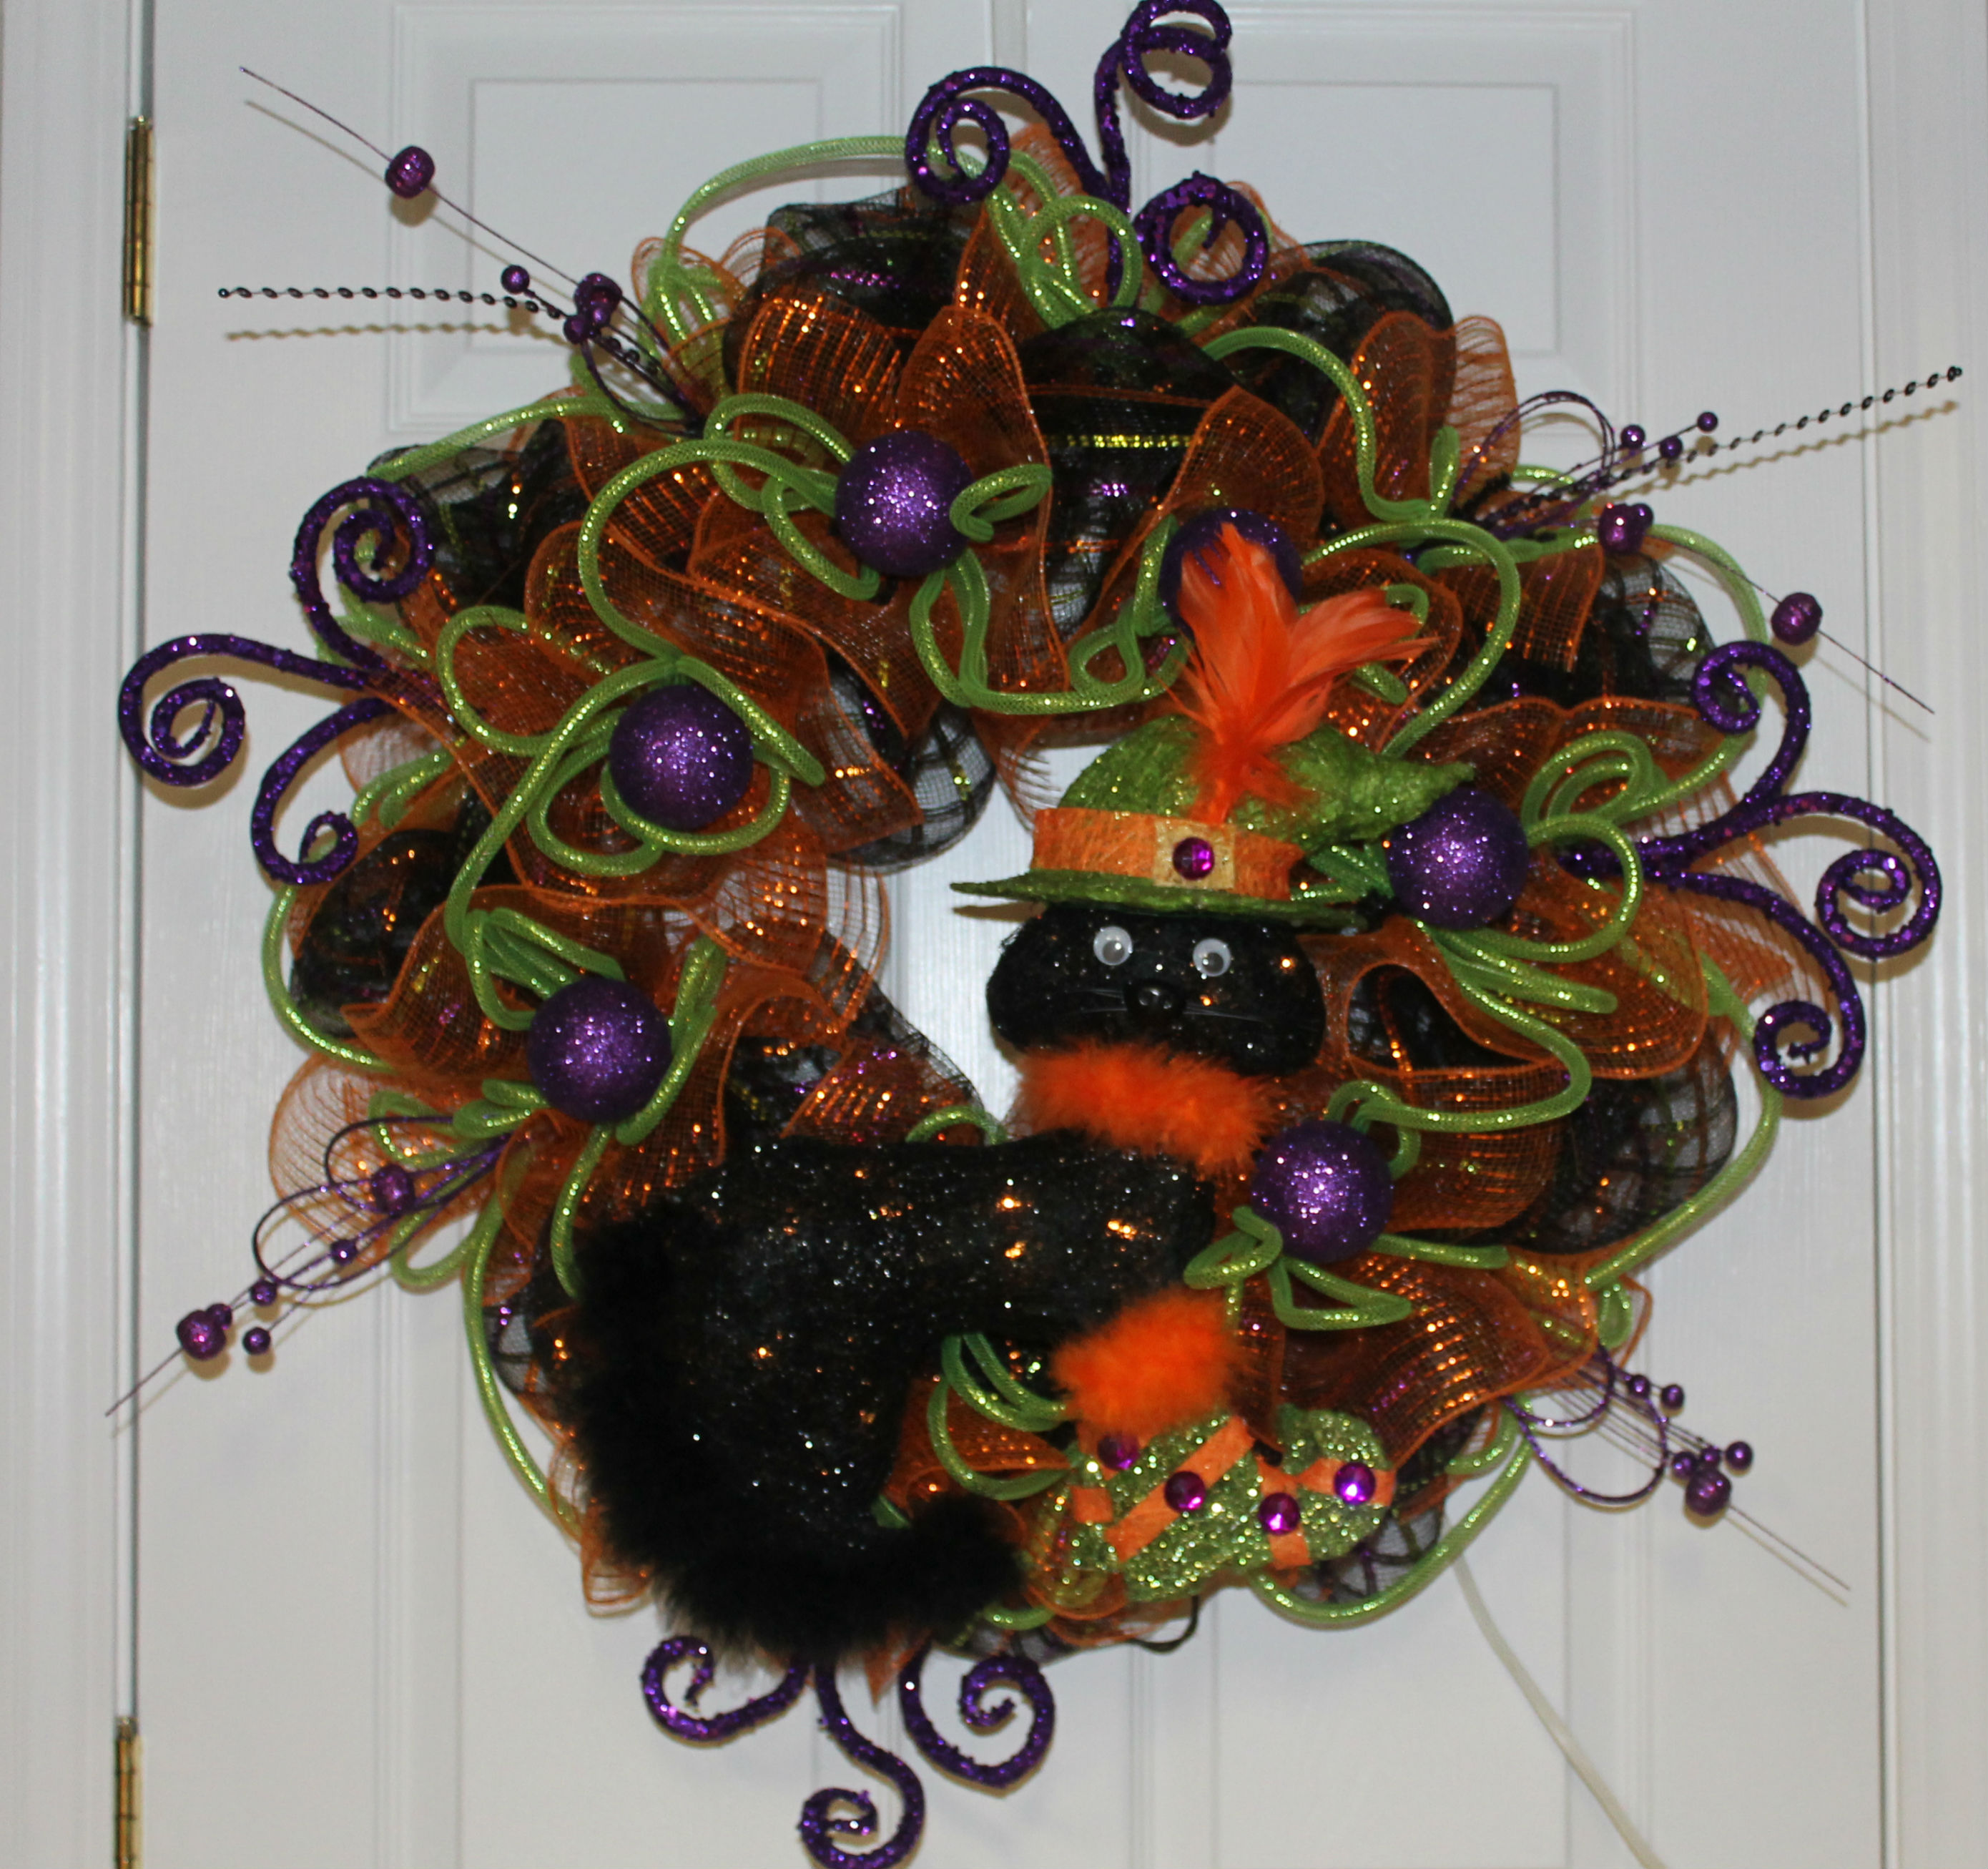 This Cat Is Dressed And Ready To Spook You.. This Is A Fun DIY Mesh Wreath  With Color And Glitz And A Dazzling Black Cat Who Is Ready To Celebrate. Nice Ideas